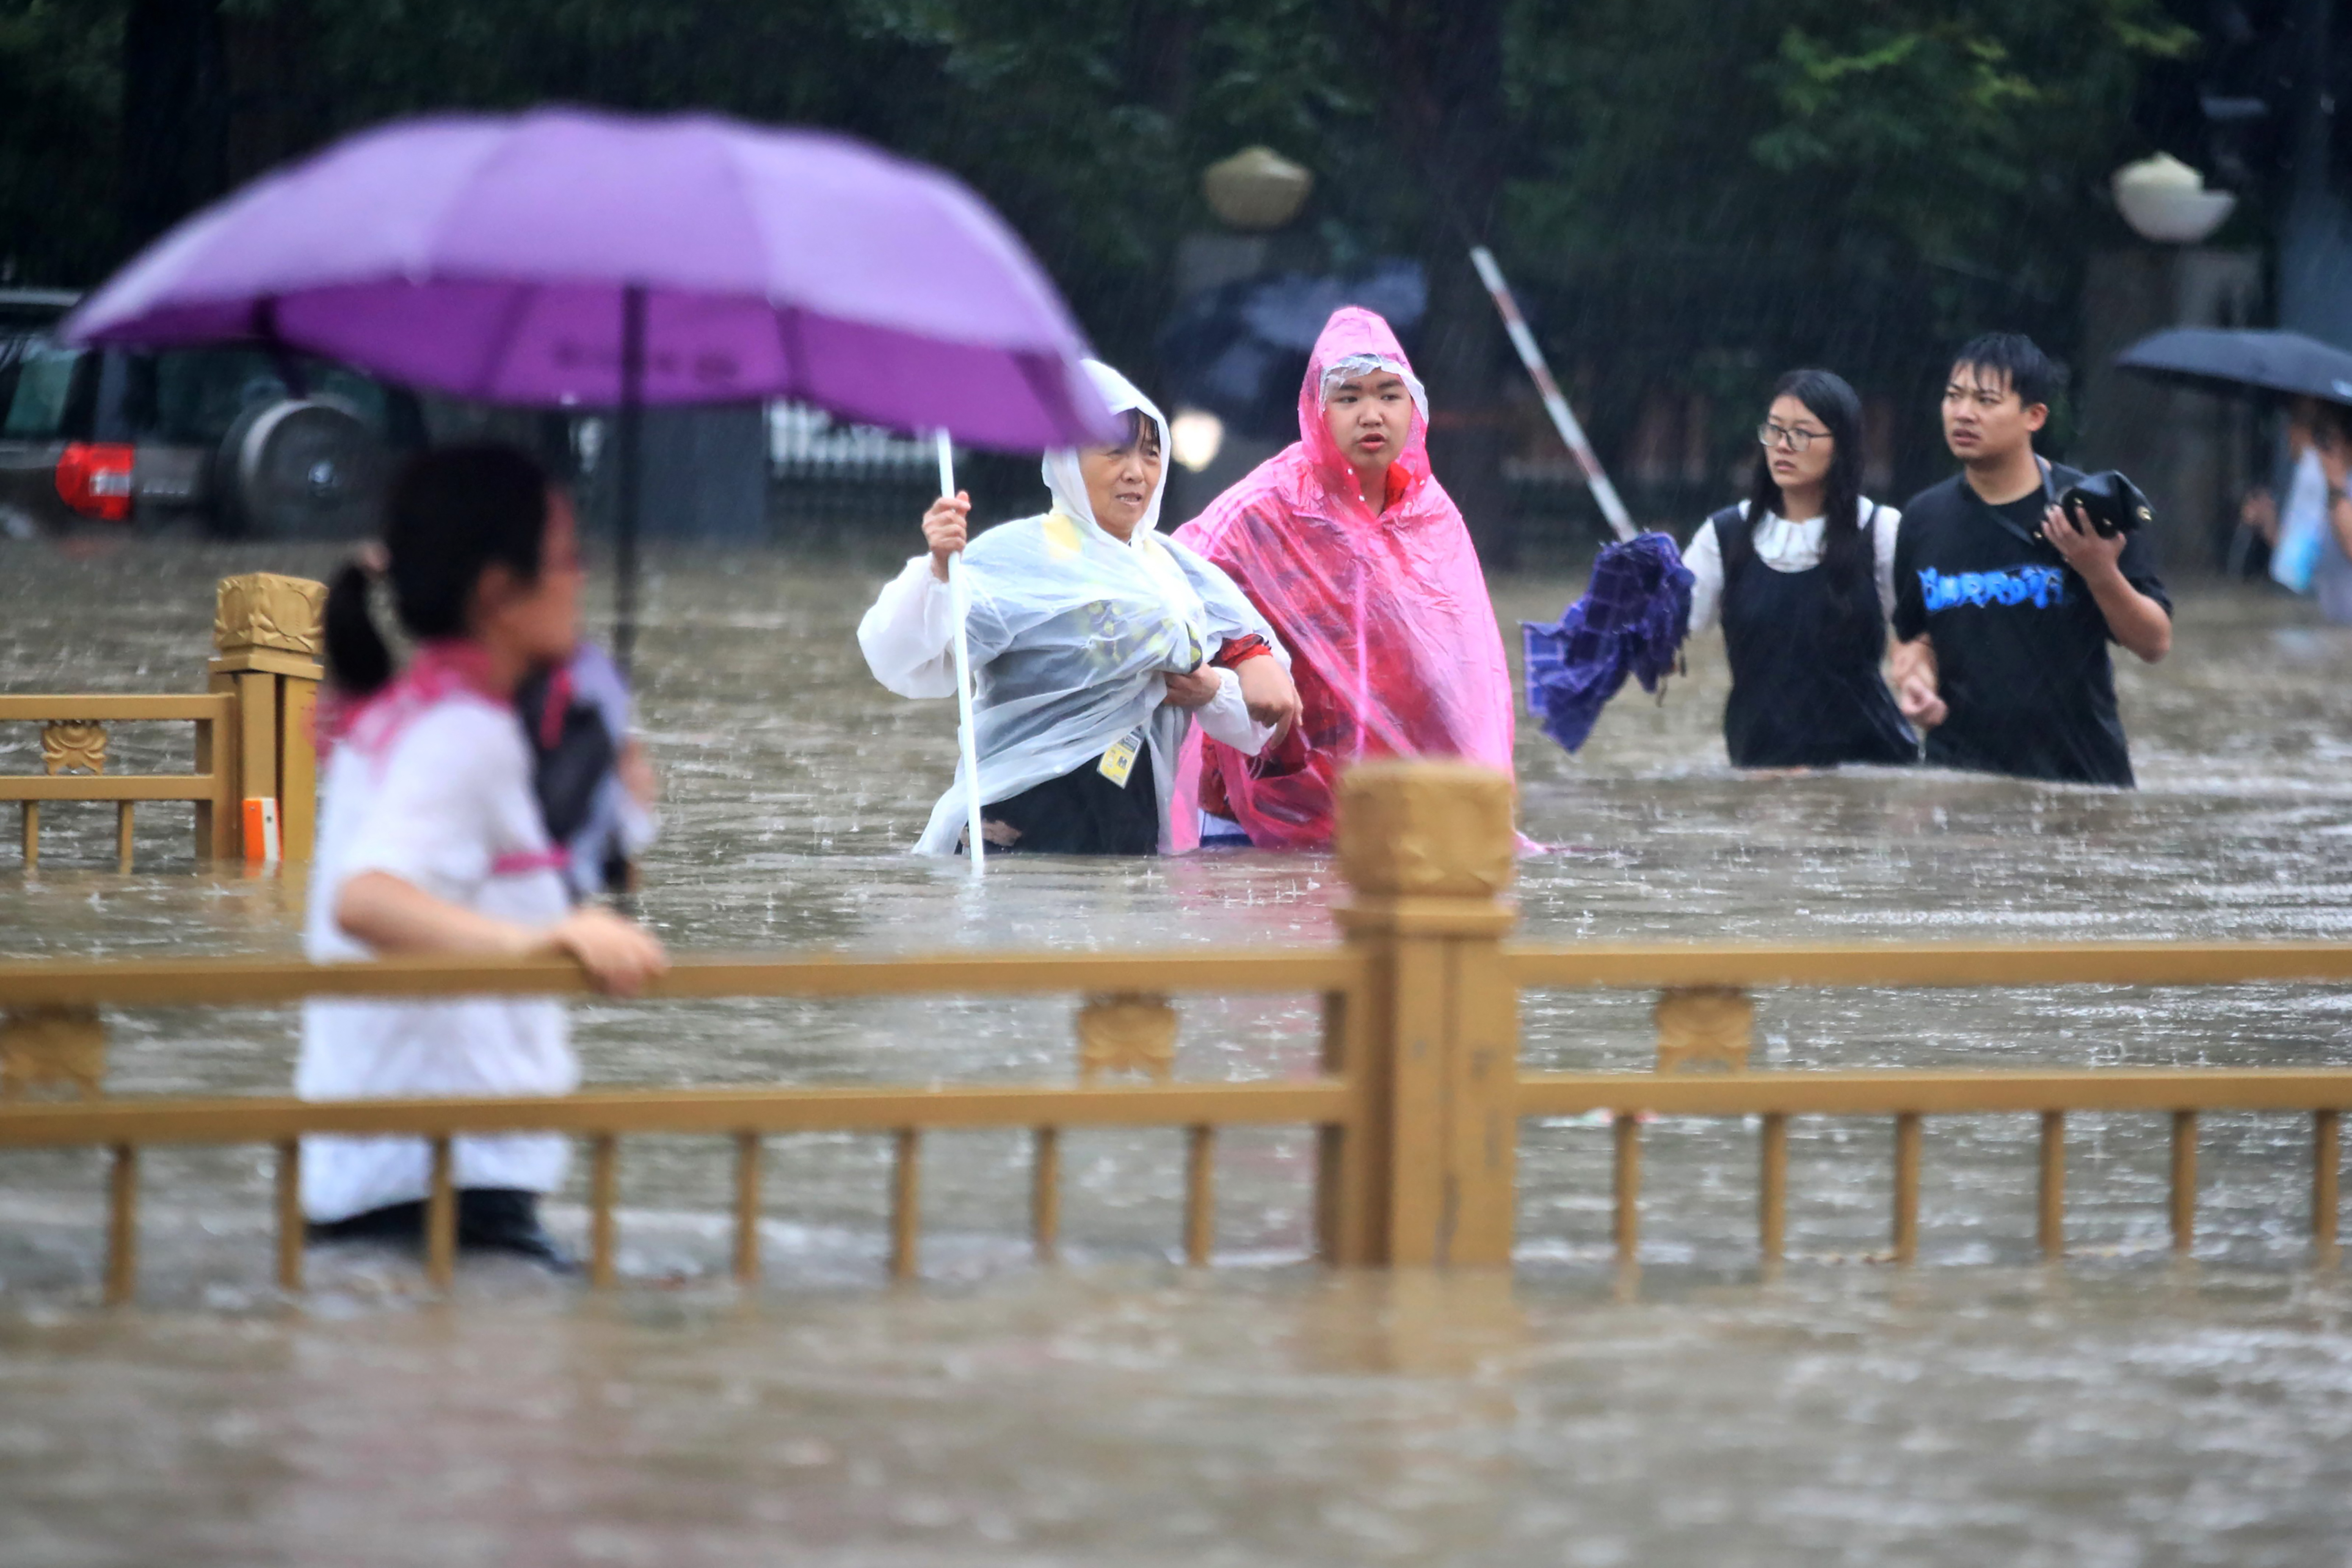 People walk through floodwaters along a street in Zhengzhou in central China's Henan Province, Tuesday, July 20, 2021. China's military has blasted a dam to release floodwaters threatening one of its most heavily populated provinces. The operation late Tuesday night in the city of Luoyang came after several people died in severe flooding in the Henan provincial capital of Zhengzhou, where residents were trapped in the subway system and left stranded at schools, apartments and offices.